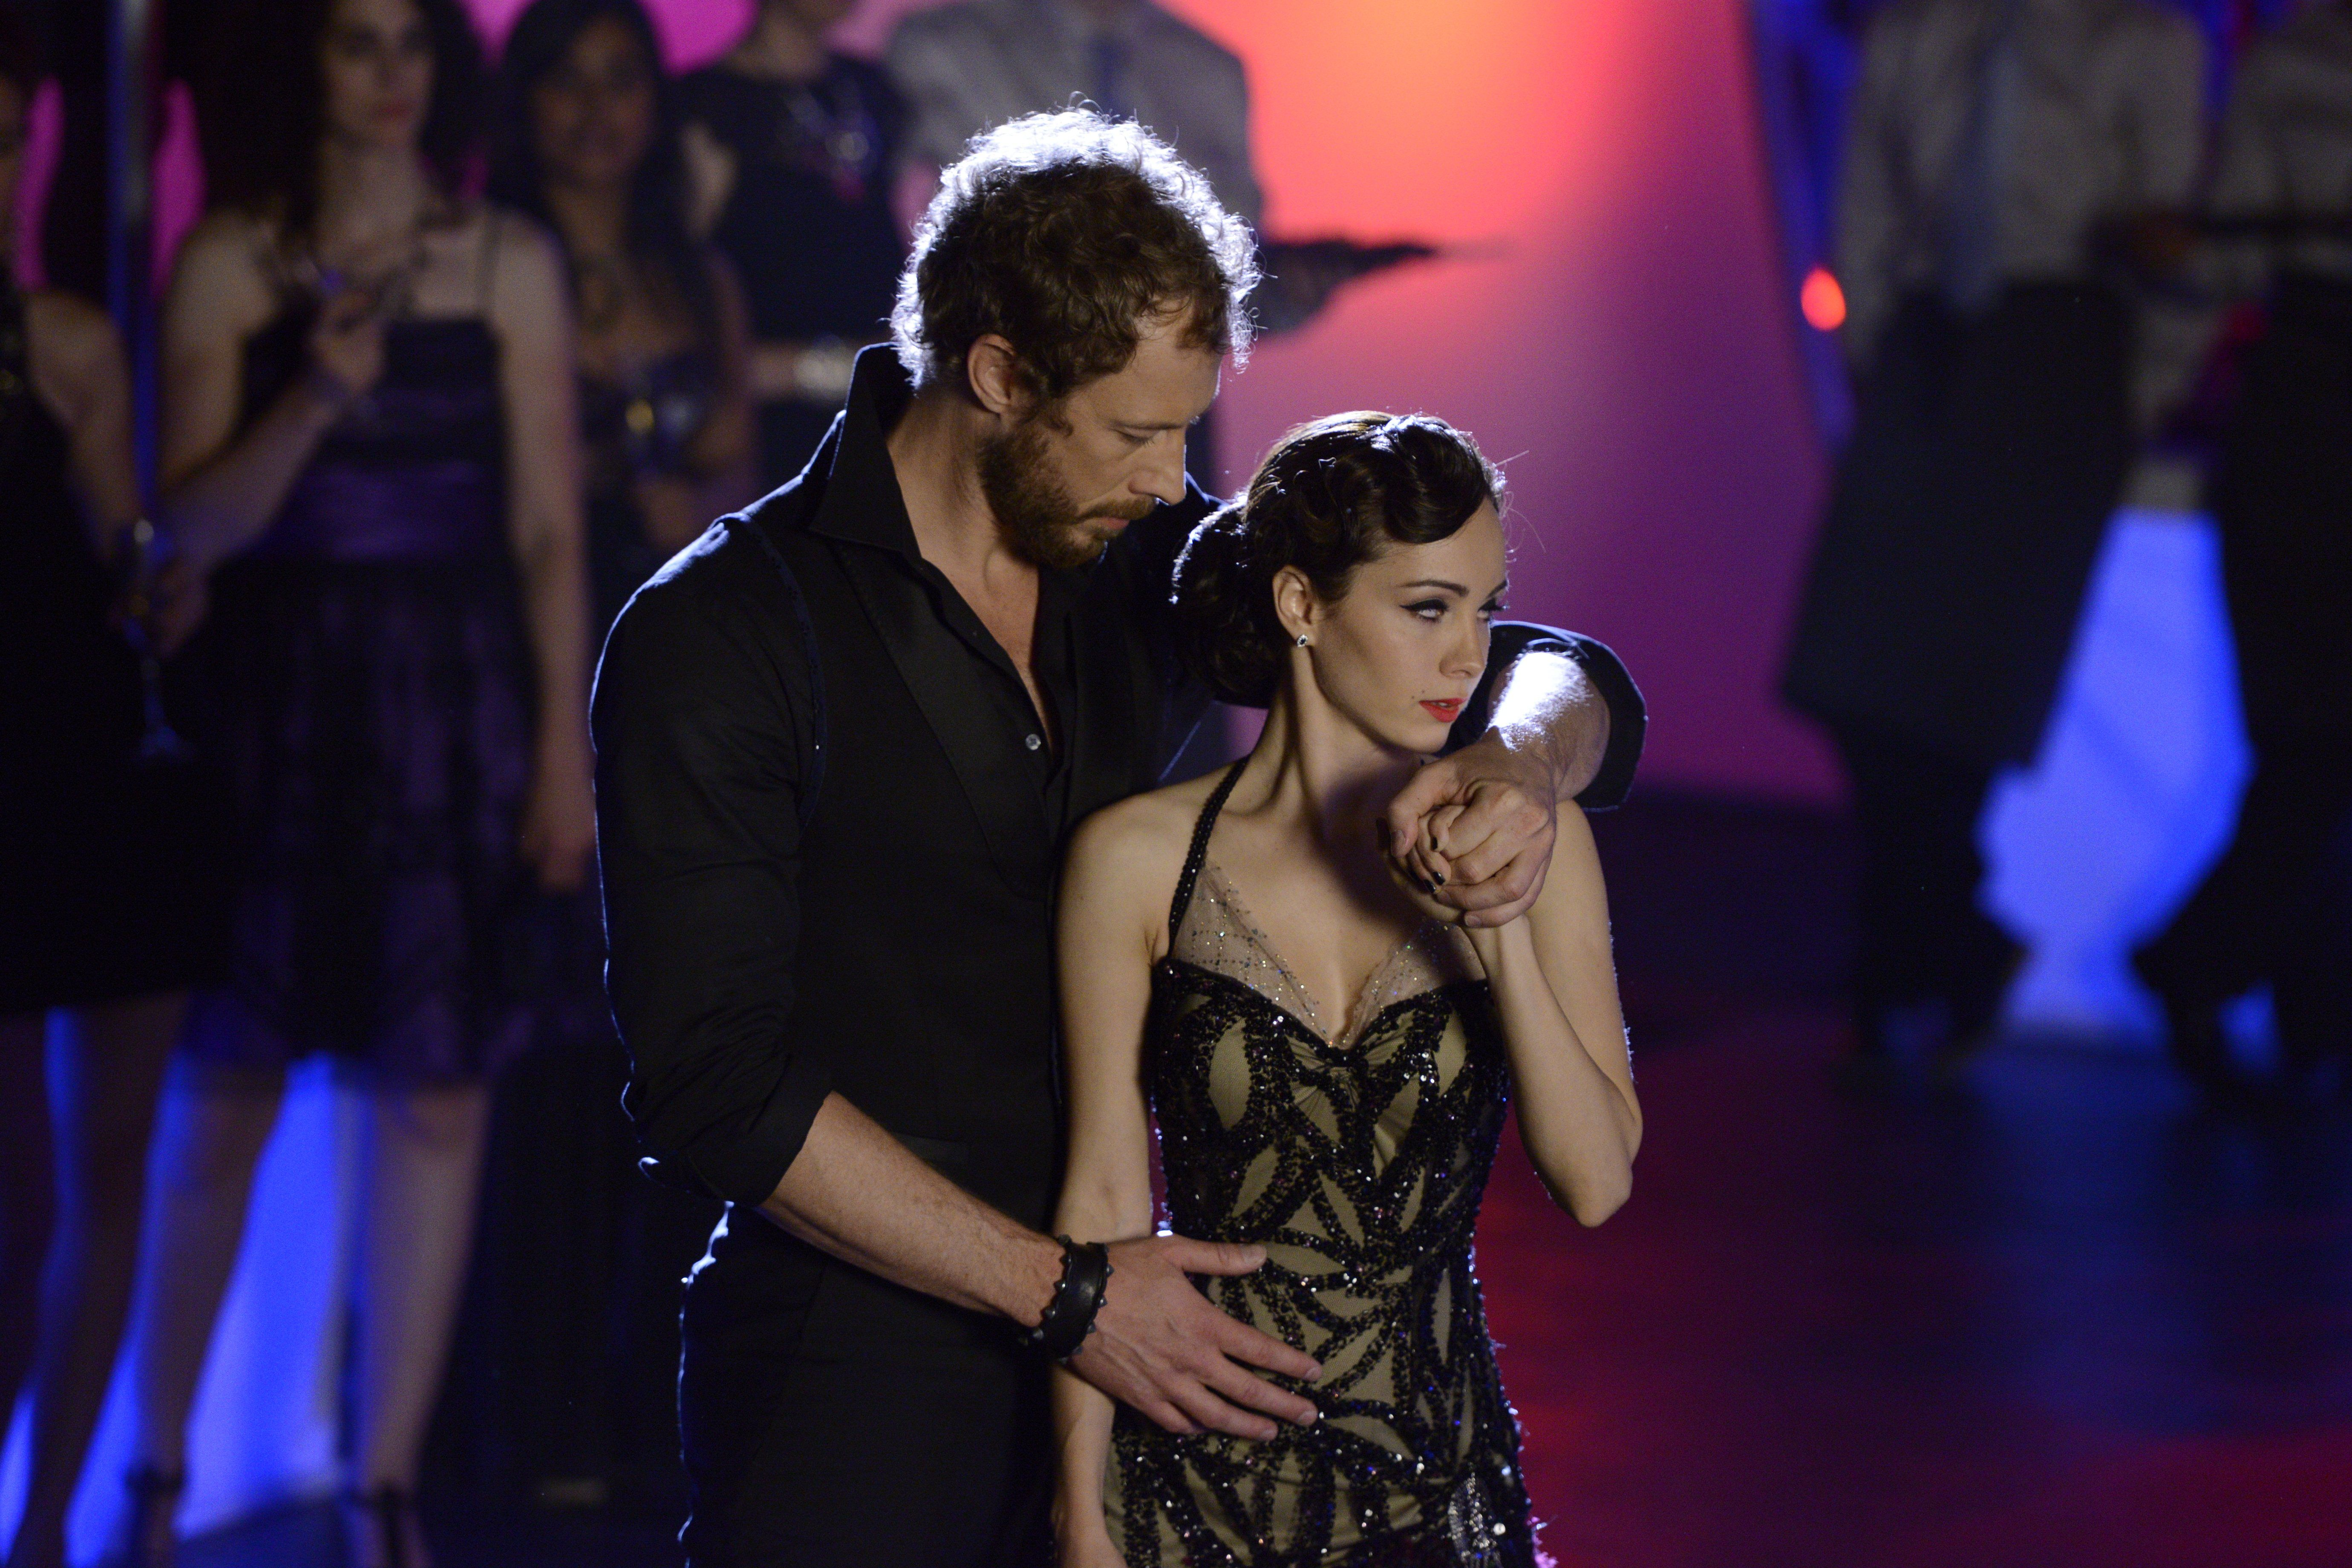 Lost Girl - Kris Holden-Ried as Dyson and Ksenia Solo as Kenzi